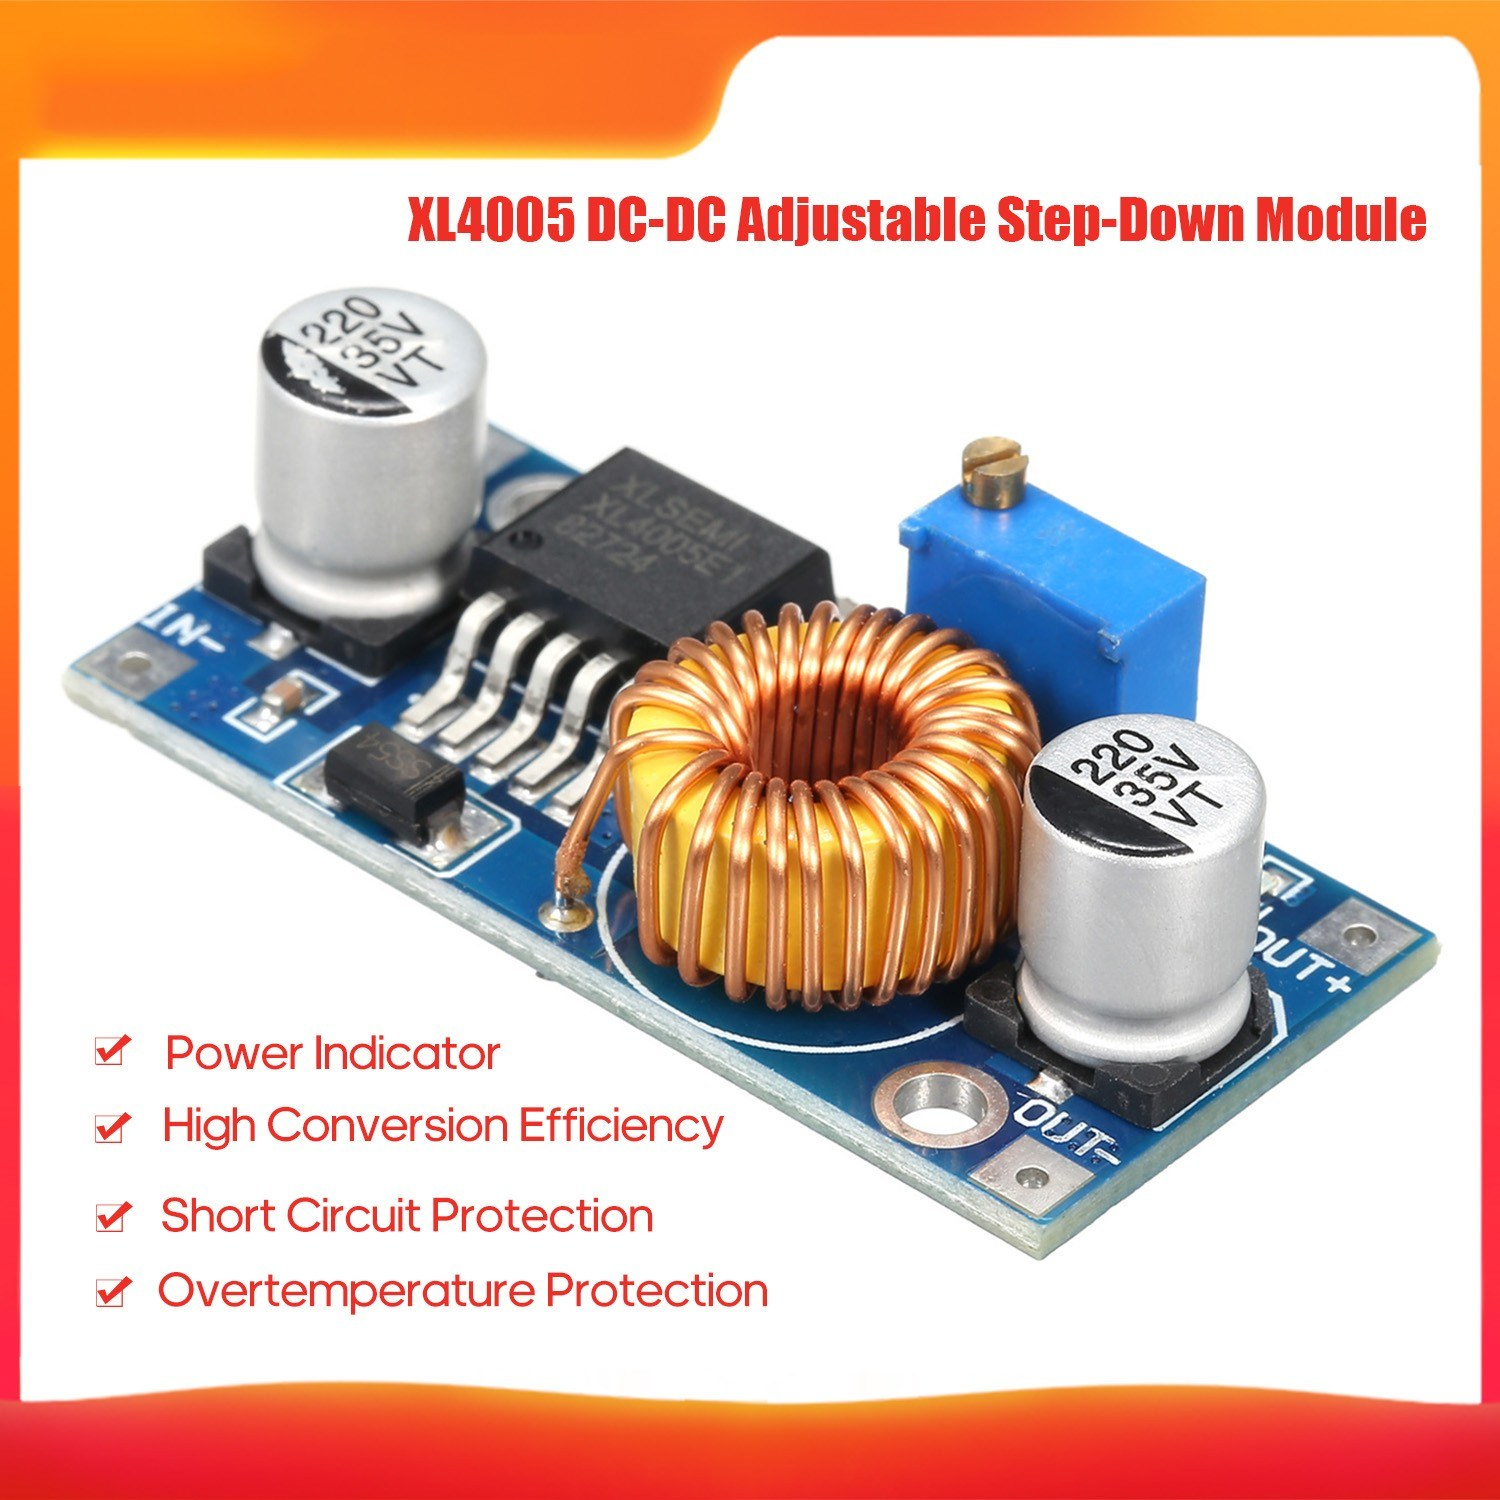 XL4005 DC-DC Adjustable Step-Down Module 4~38V 5A High Conversion Efficiency Low Ripple Adjustable Automatic Converter